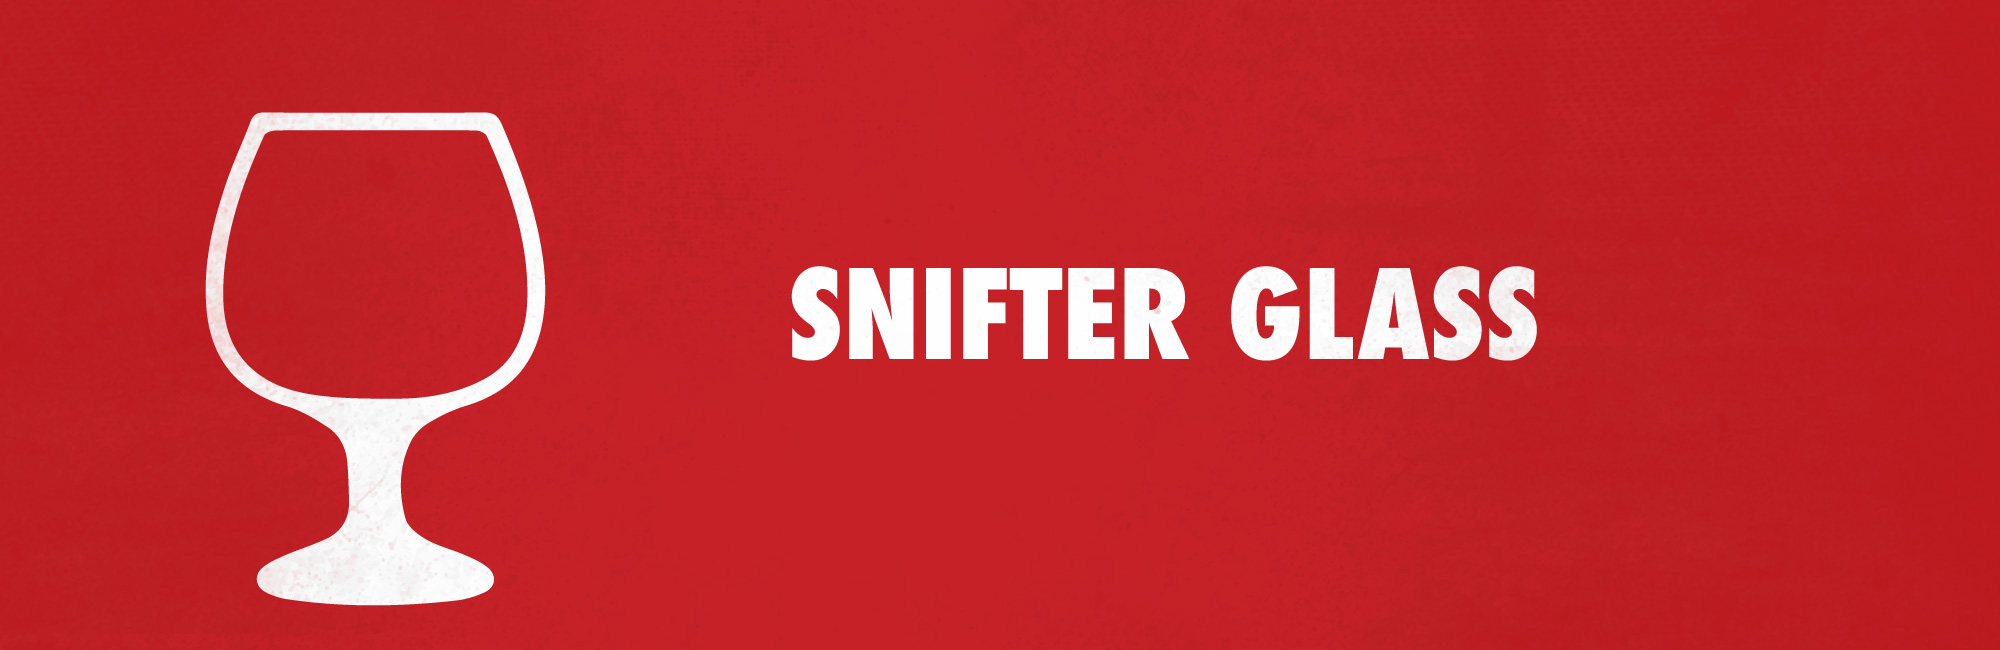 snifters